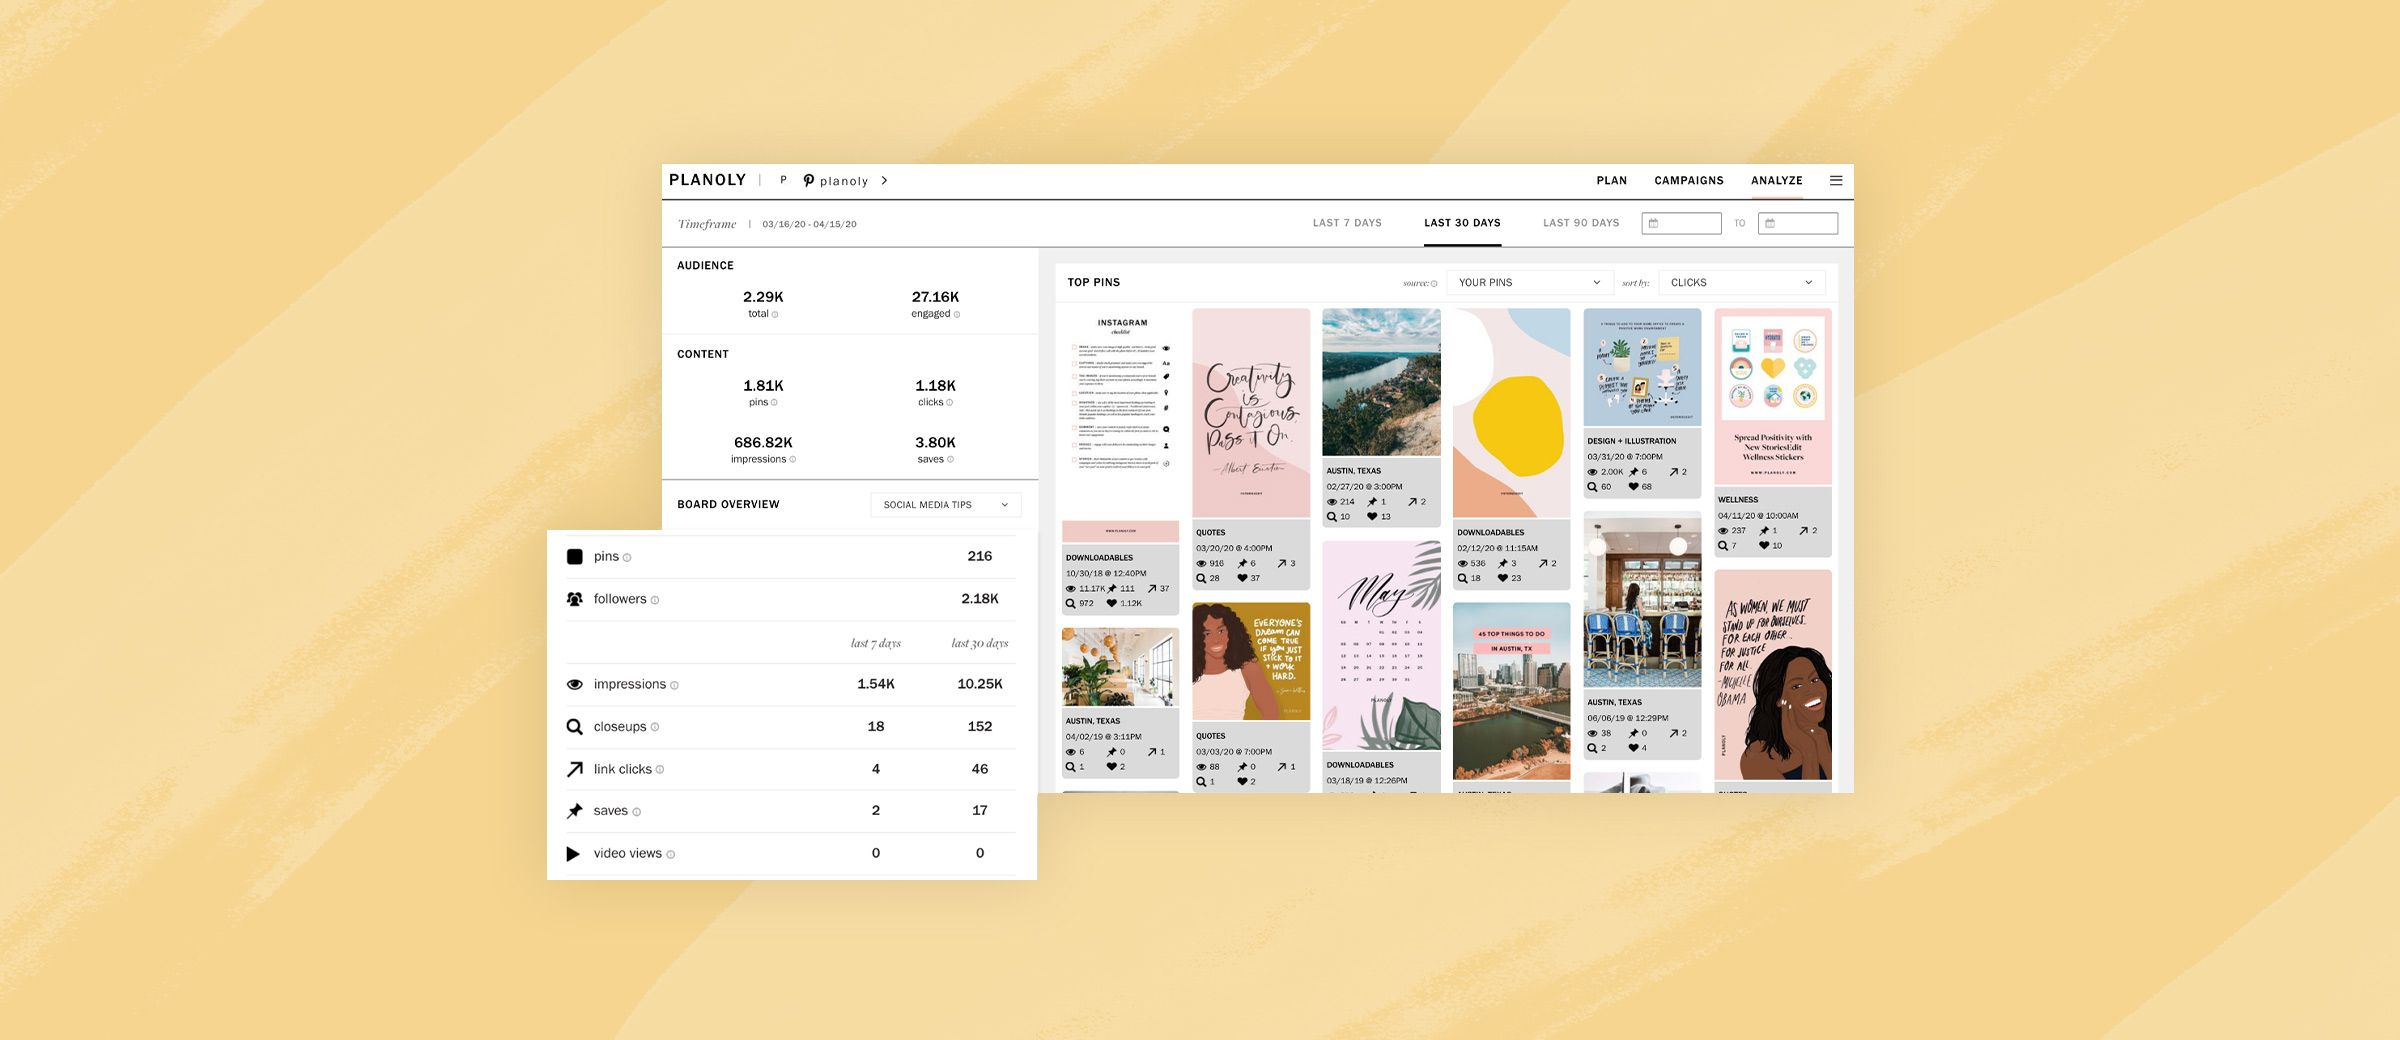 Set It and Forget It: PLANOLY Hacks on Bulk Planning for Pinterest